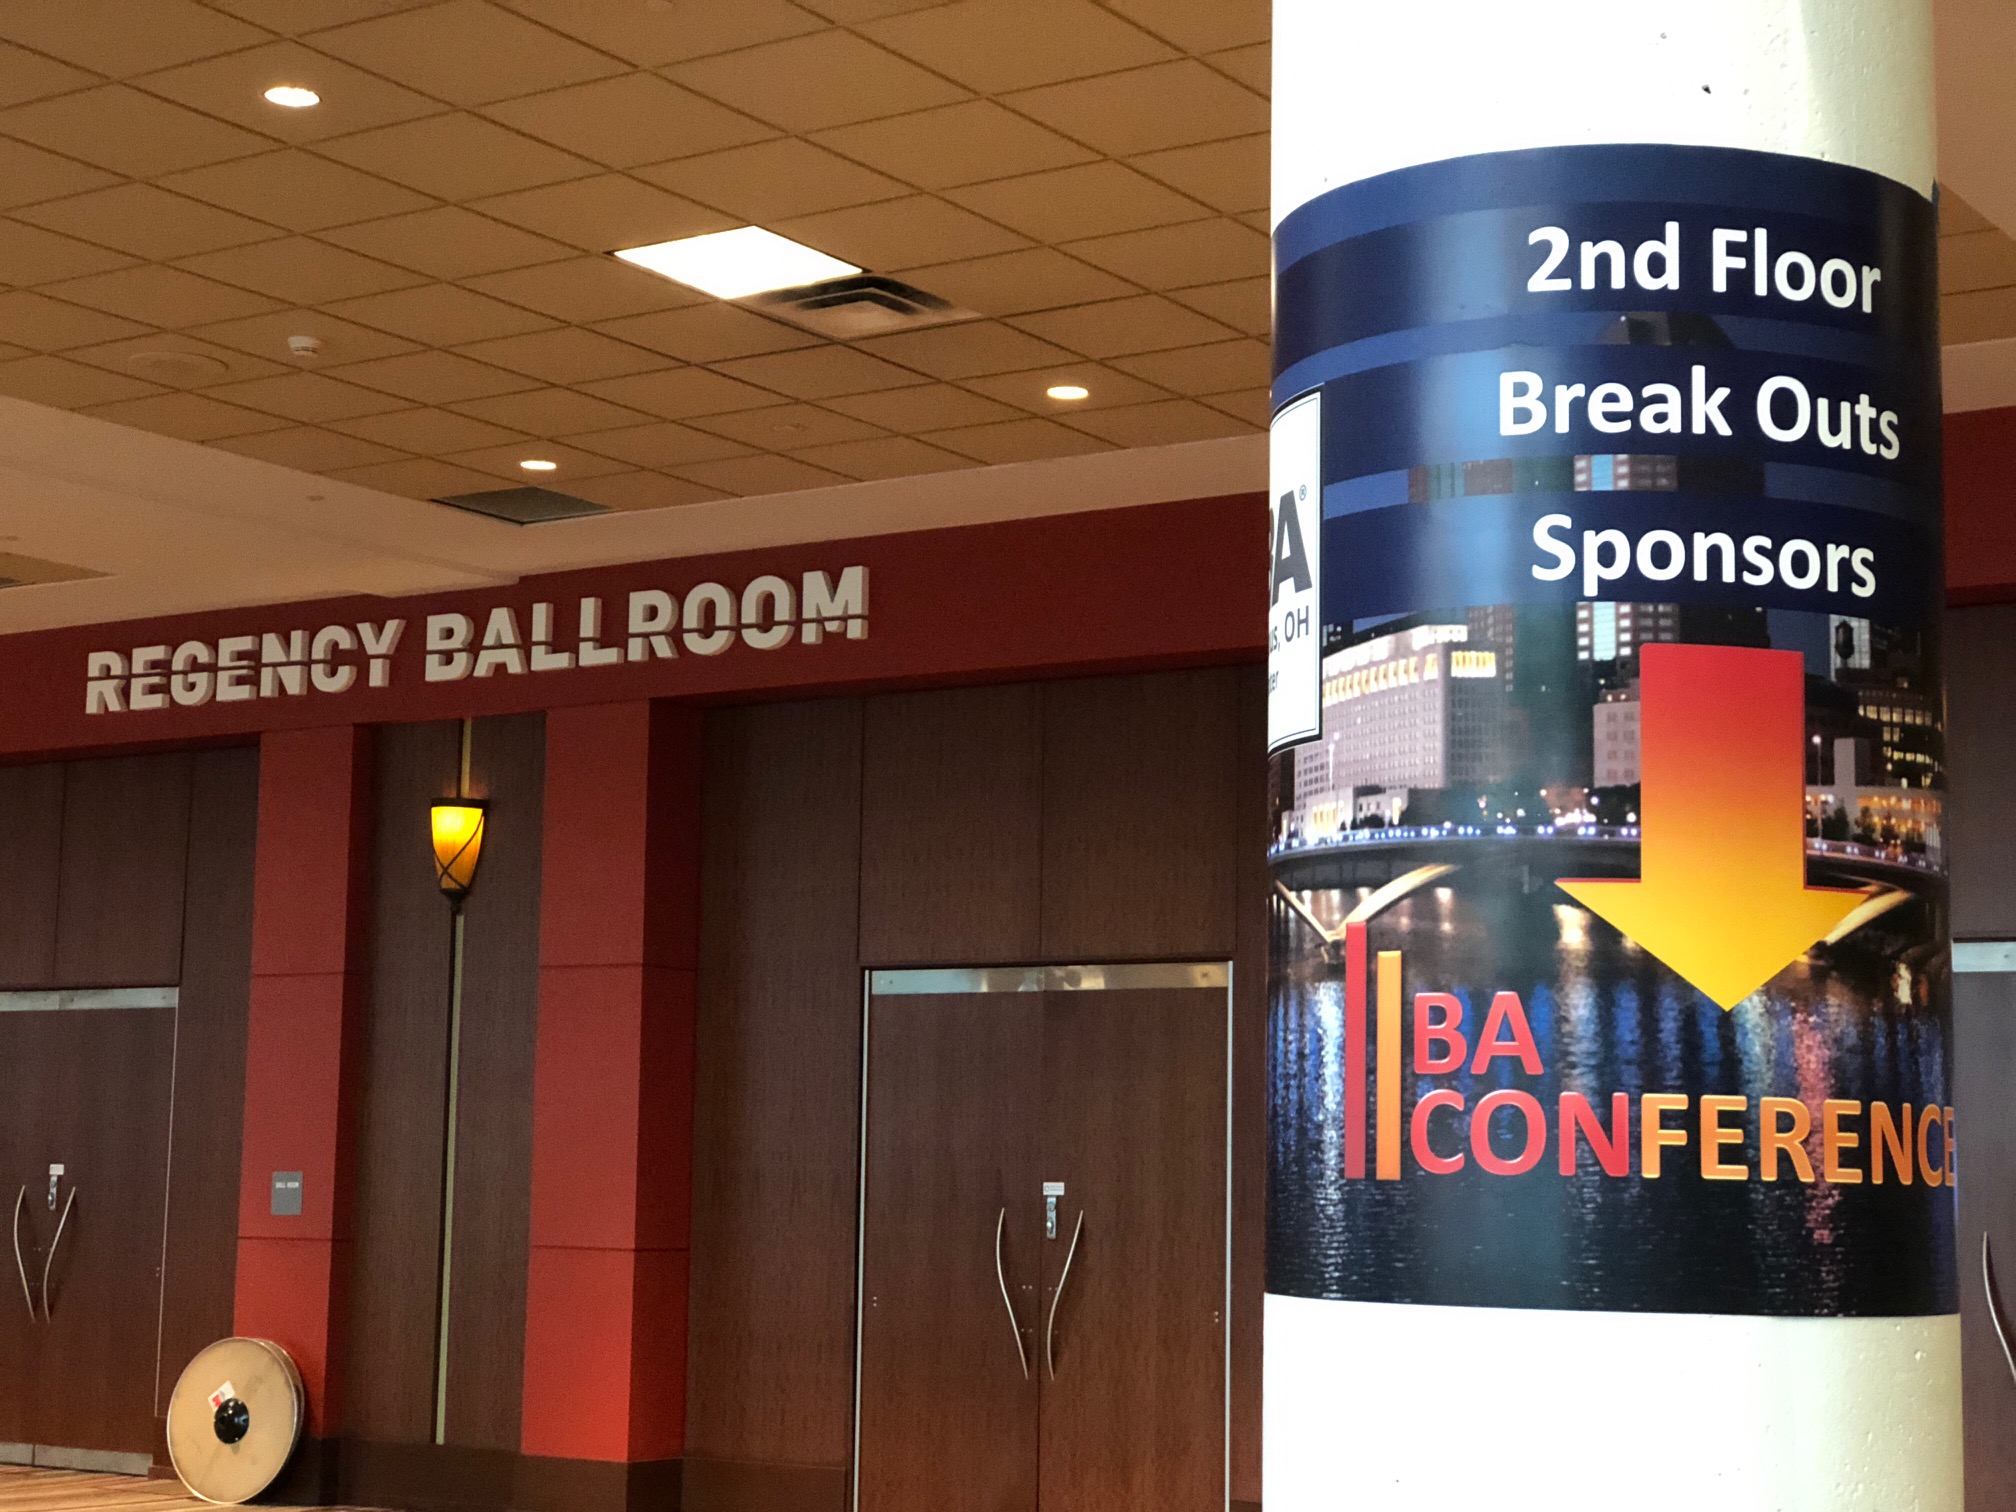 Supporting Sponsor - • 15 available sponsorships• Booth in sponsor room• 1 Complimentary registration• Placement of company logo on conference website• An ad on the conference app• Floor advertisements• Attendee scan and prize giveaway• Sponsor buffet• $2,000 for all day on Friday, August 23rd